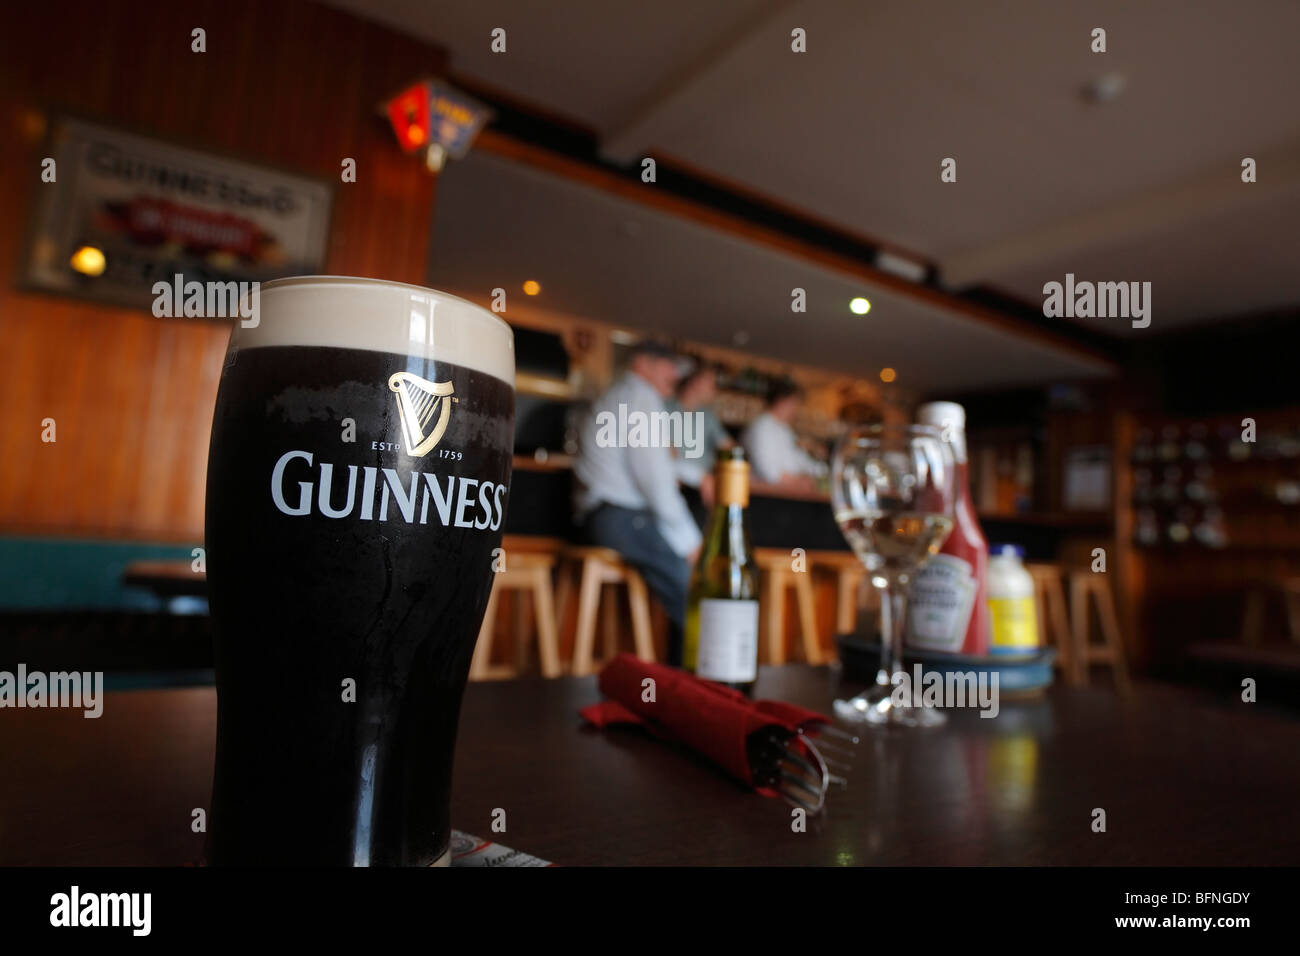 a pint of Guinness on a table in the Roundstone House a bar and hotel in Roundstone, Connemara, Ireland - Stock Image